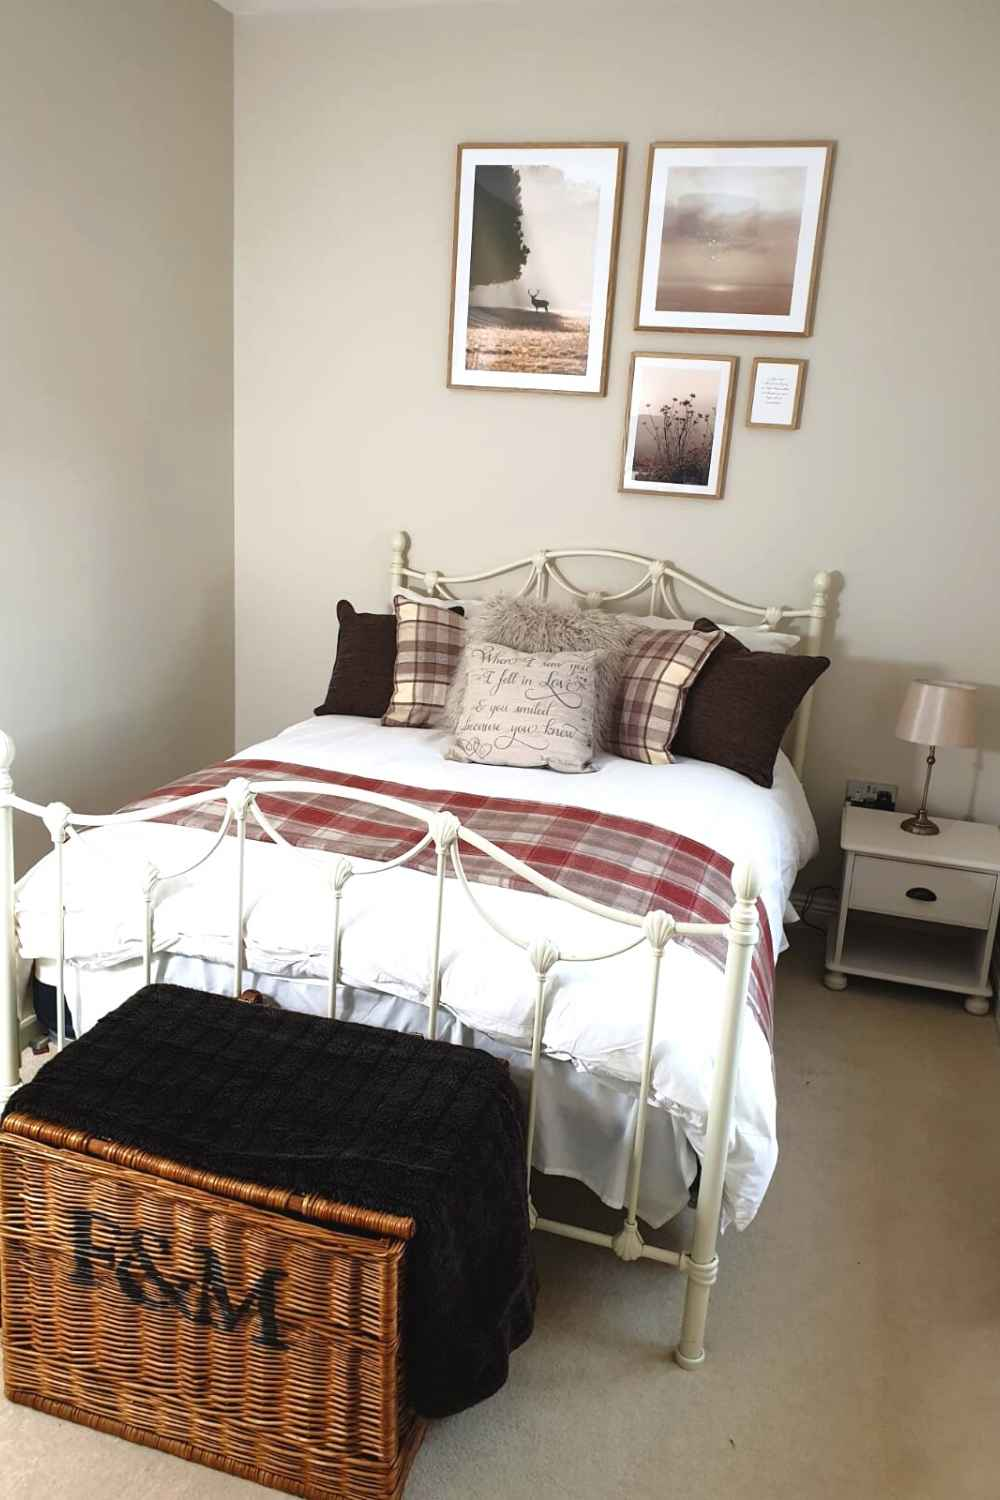 a bedroom with pictures on the wall and a basket at the foot of the bed